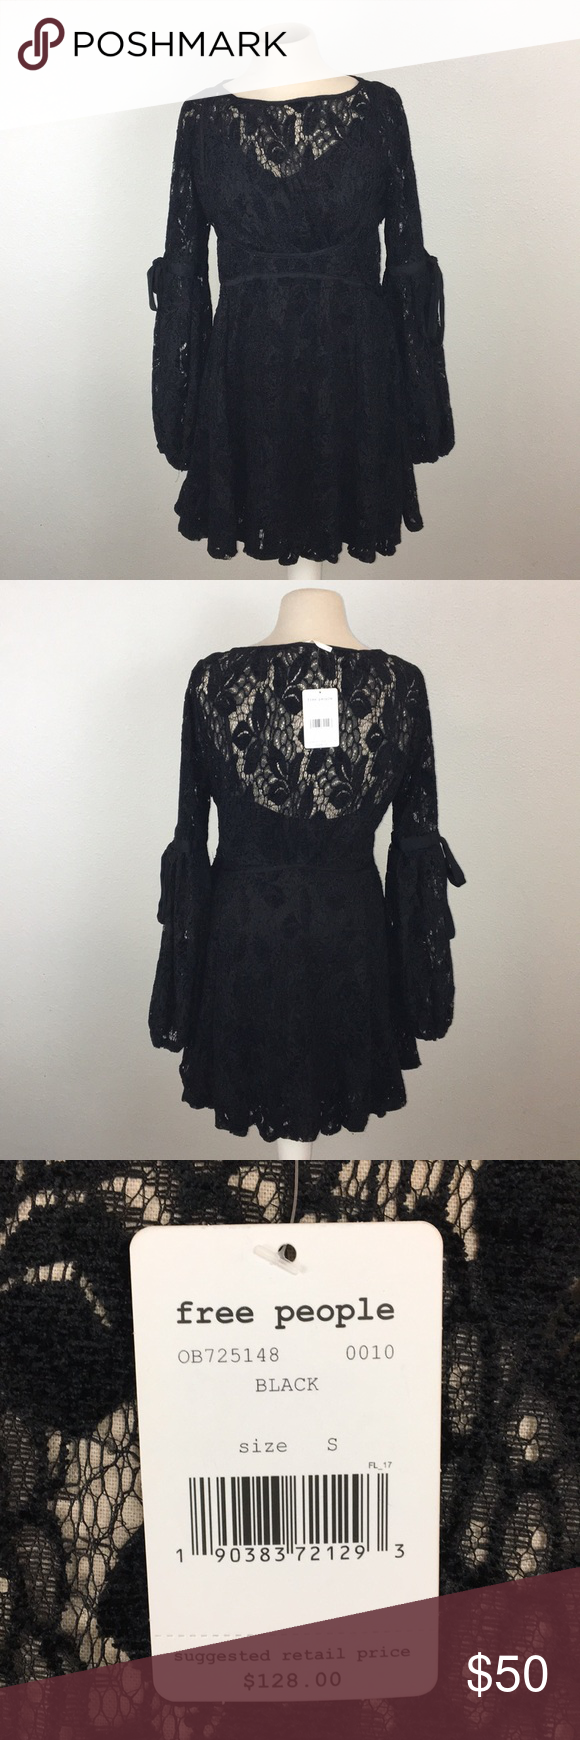 9e9bc08fe3920 NWT Free People Ruby Lace Dress w  Tie Sleeves New With Tags Free People  Ruby